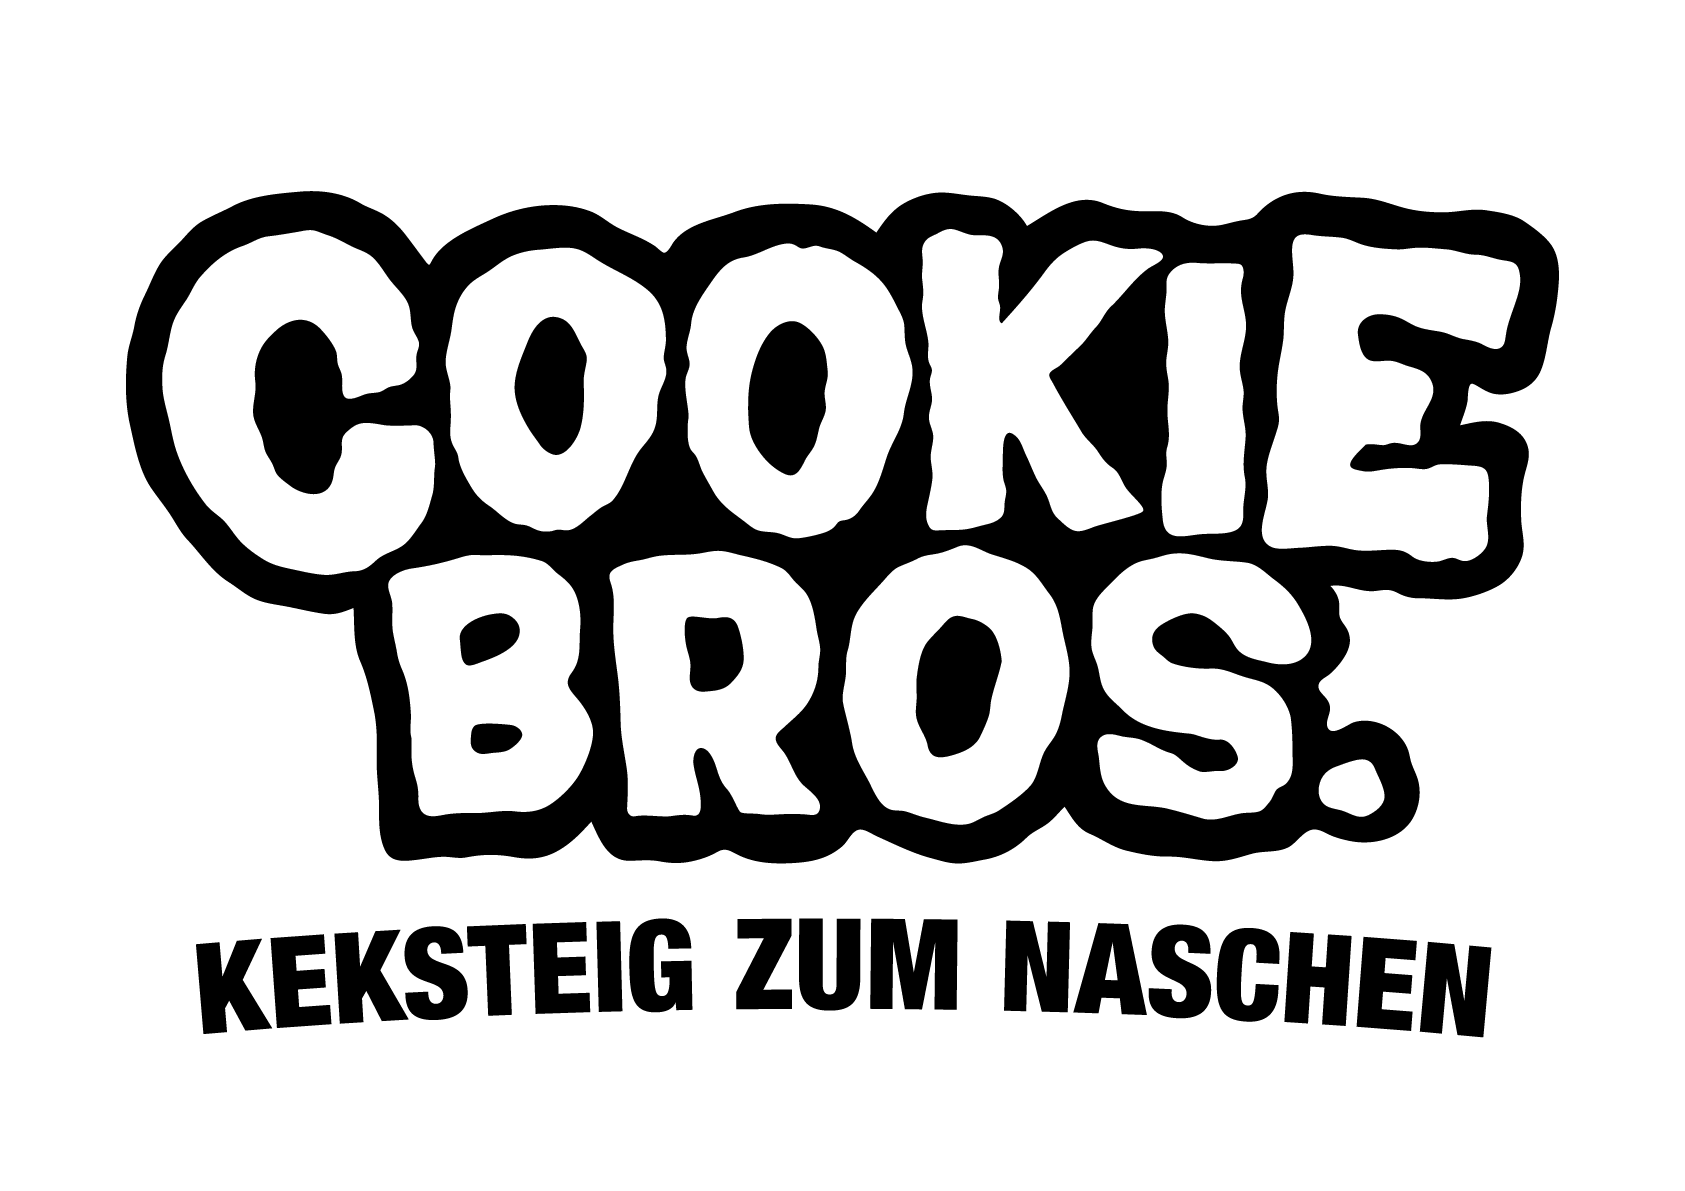 Cookie Bros.